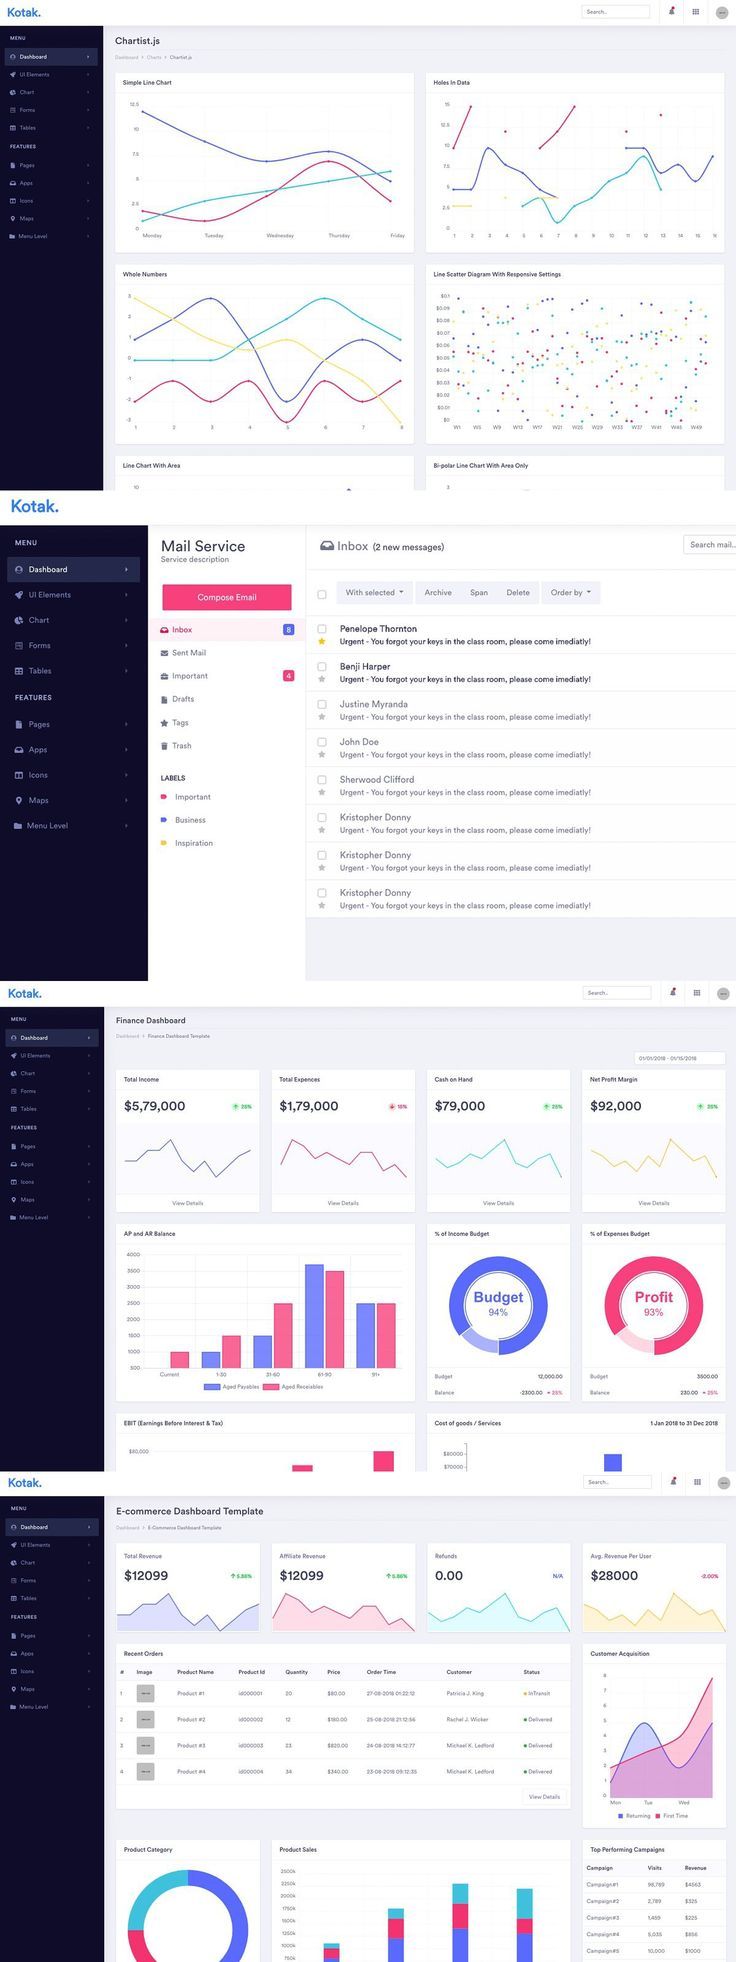 Kotak Bootstrap Admin Dashboard in 2020 Web graphic